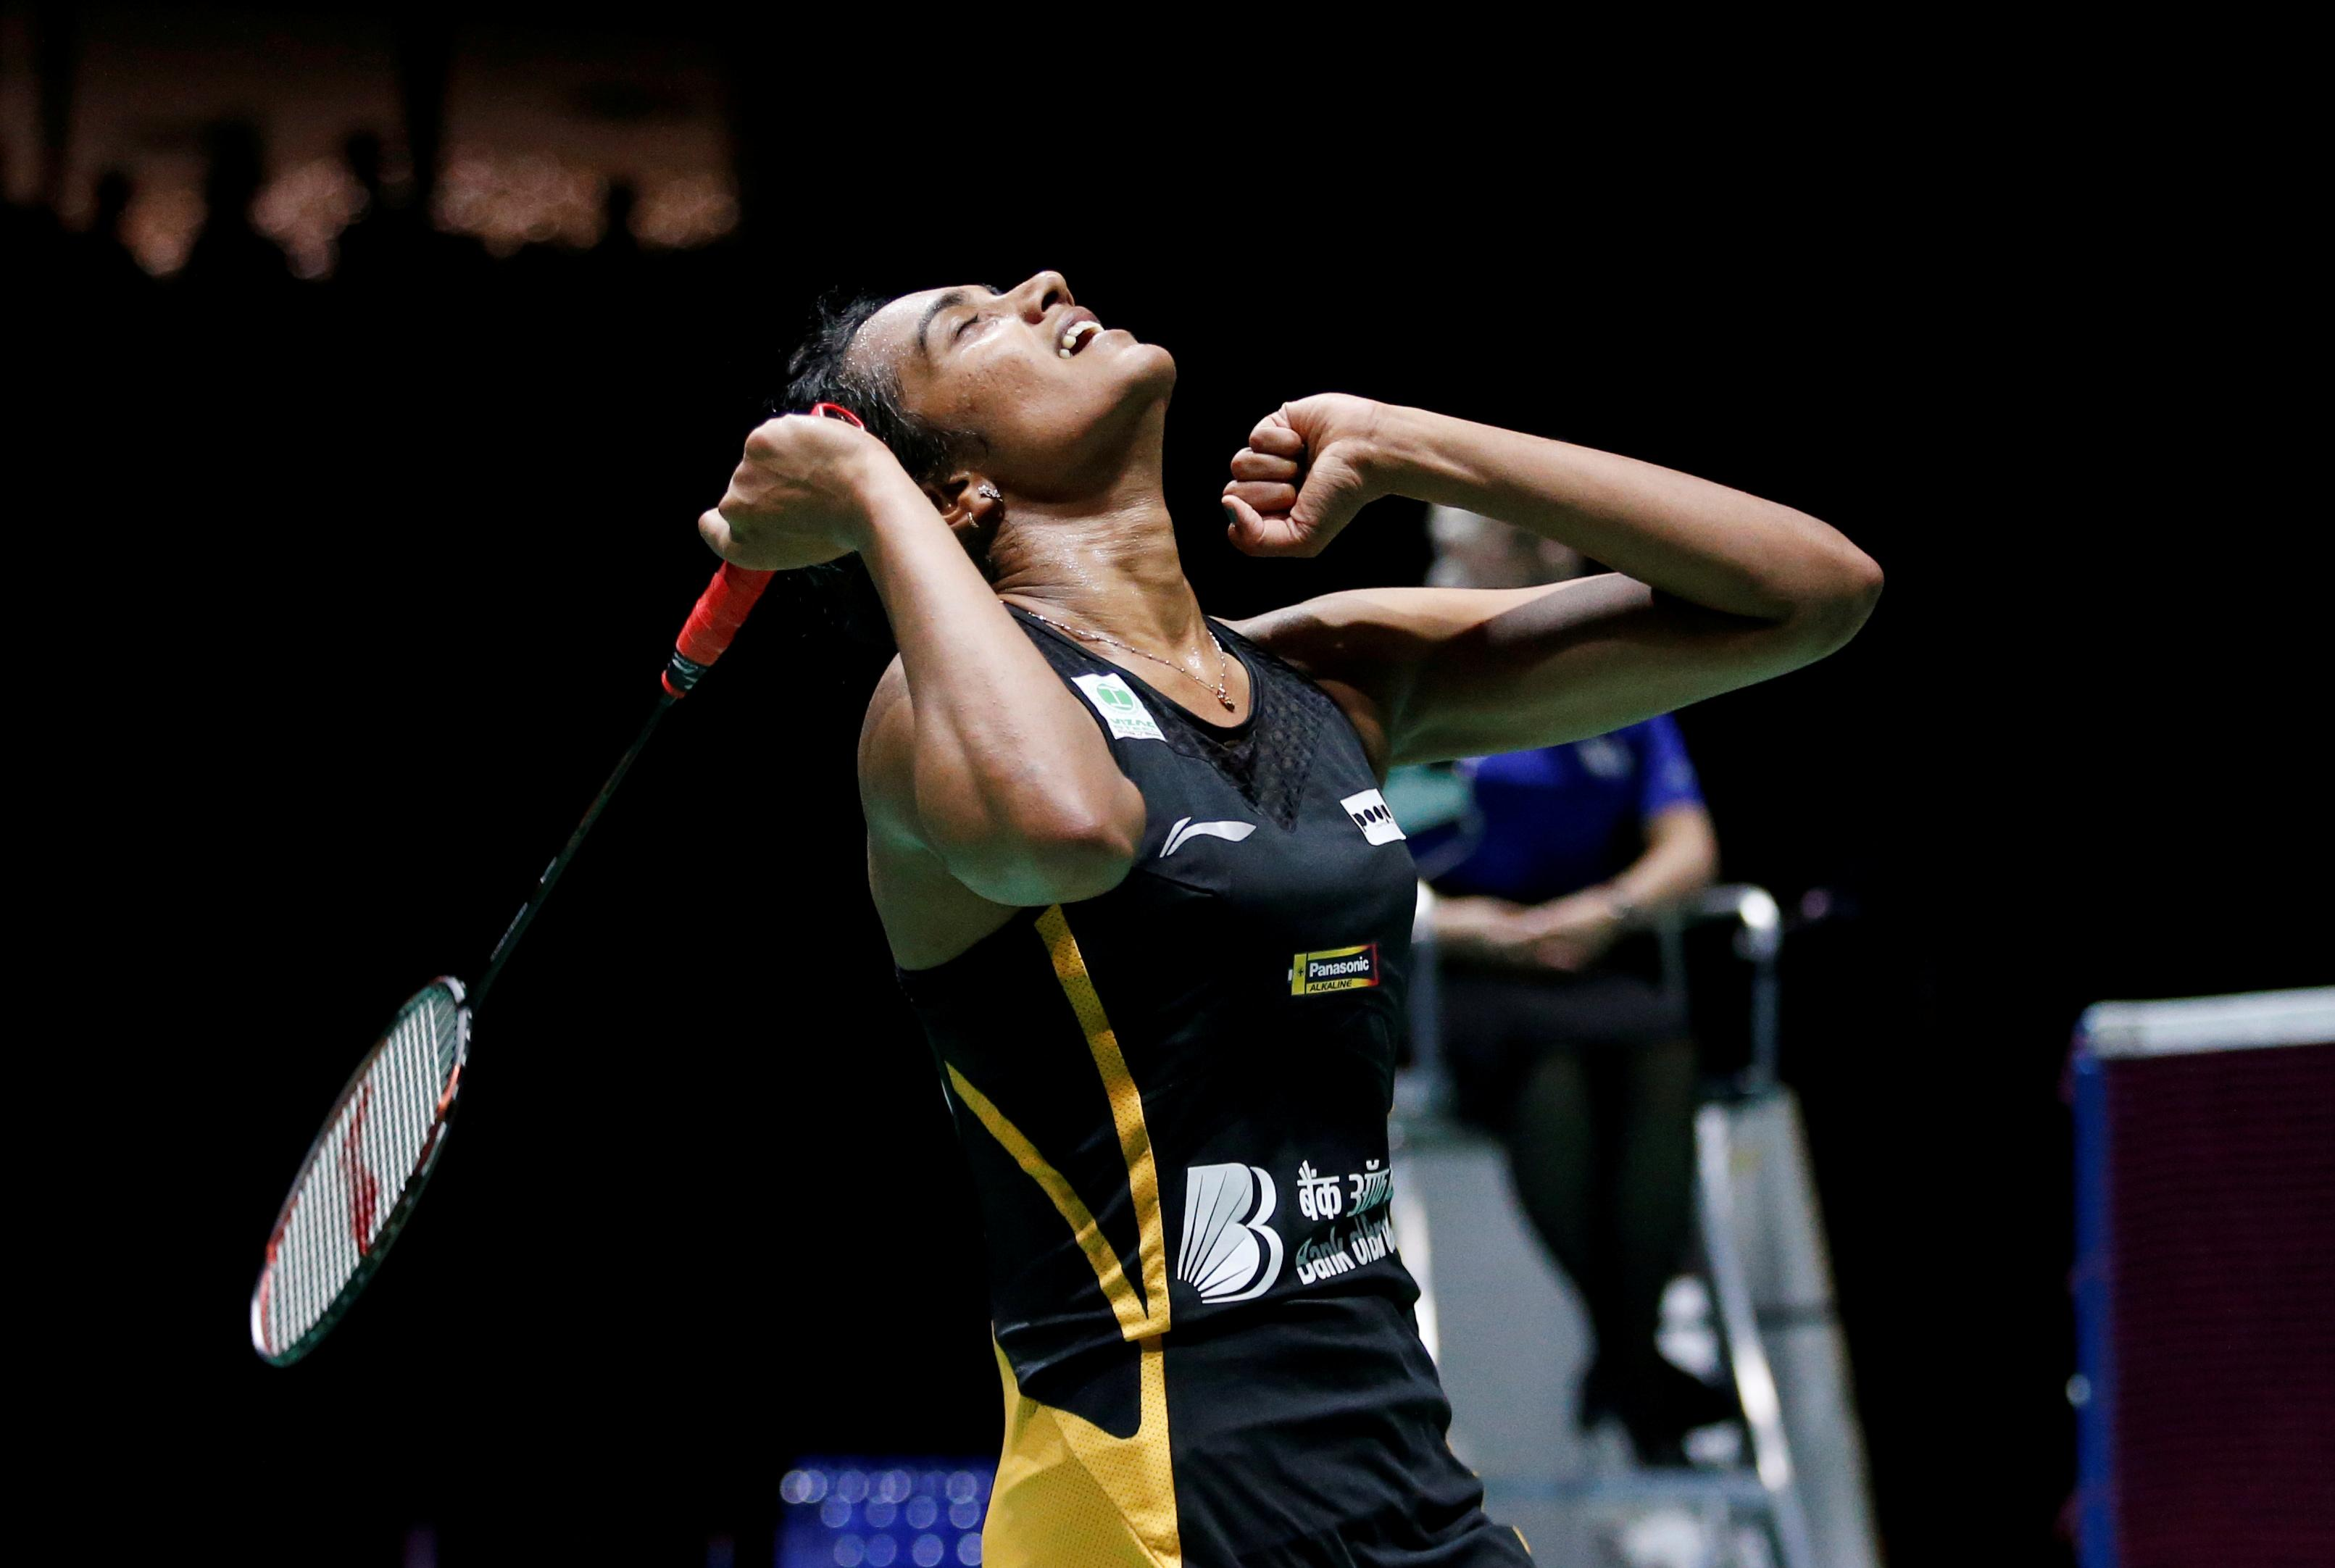 Badminton: India's Sindhu primed for Tokyo gold, says coach